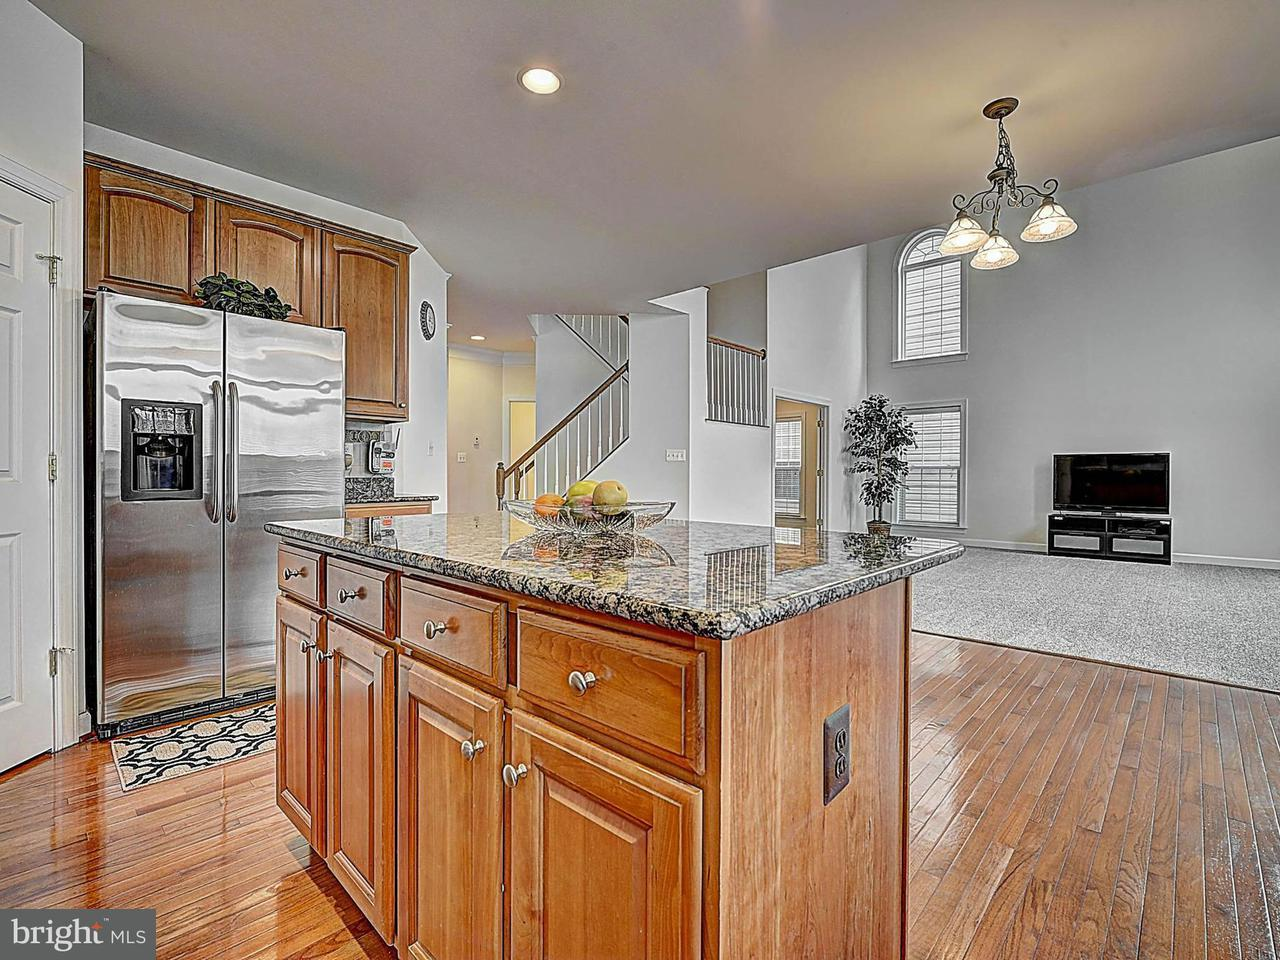 Additional photo for property listing at 9160 Finnegan Street 9160 Finnegan Street Lorton, Virginia 22079 Estados Unidos